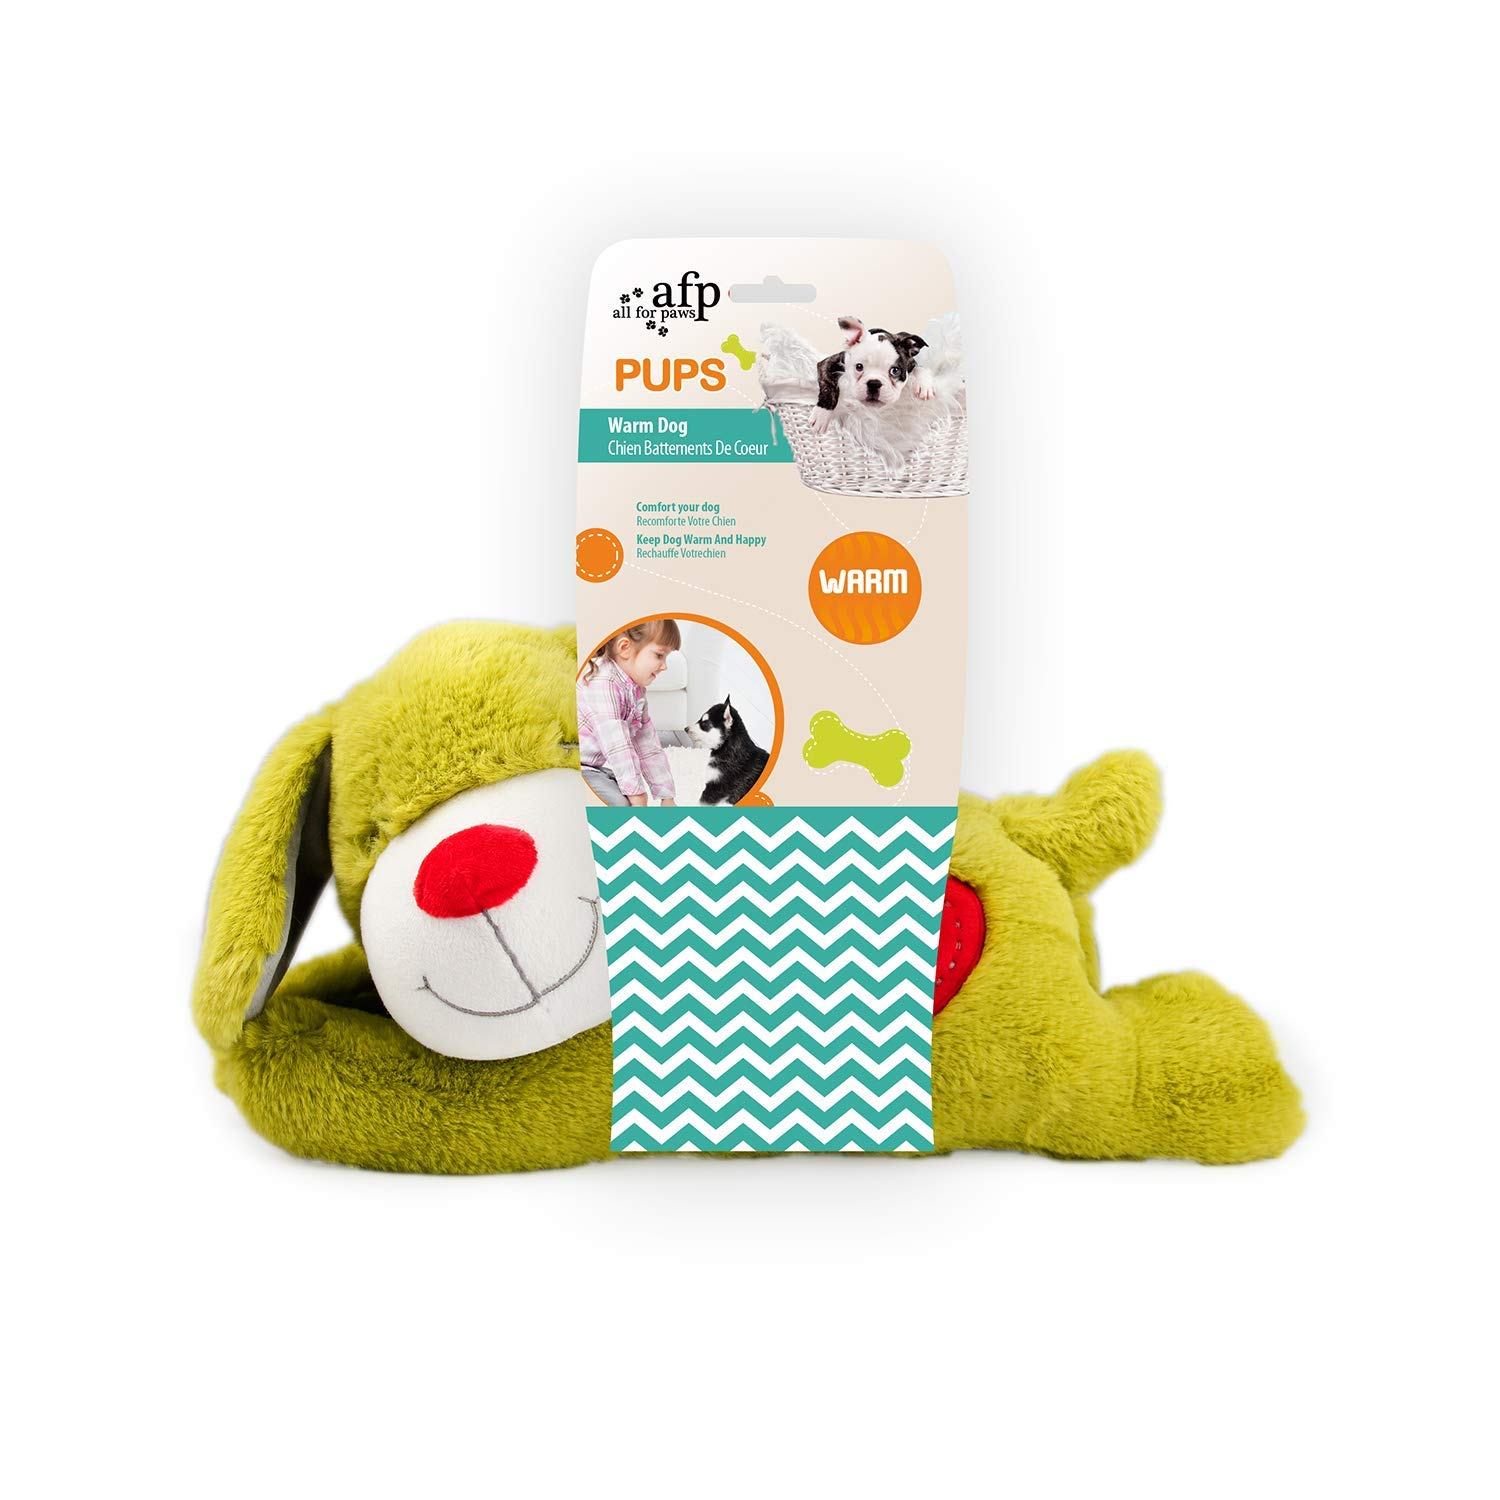 ALL FOR PAWS AFP Little Buddy – Warm Dog